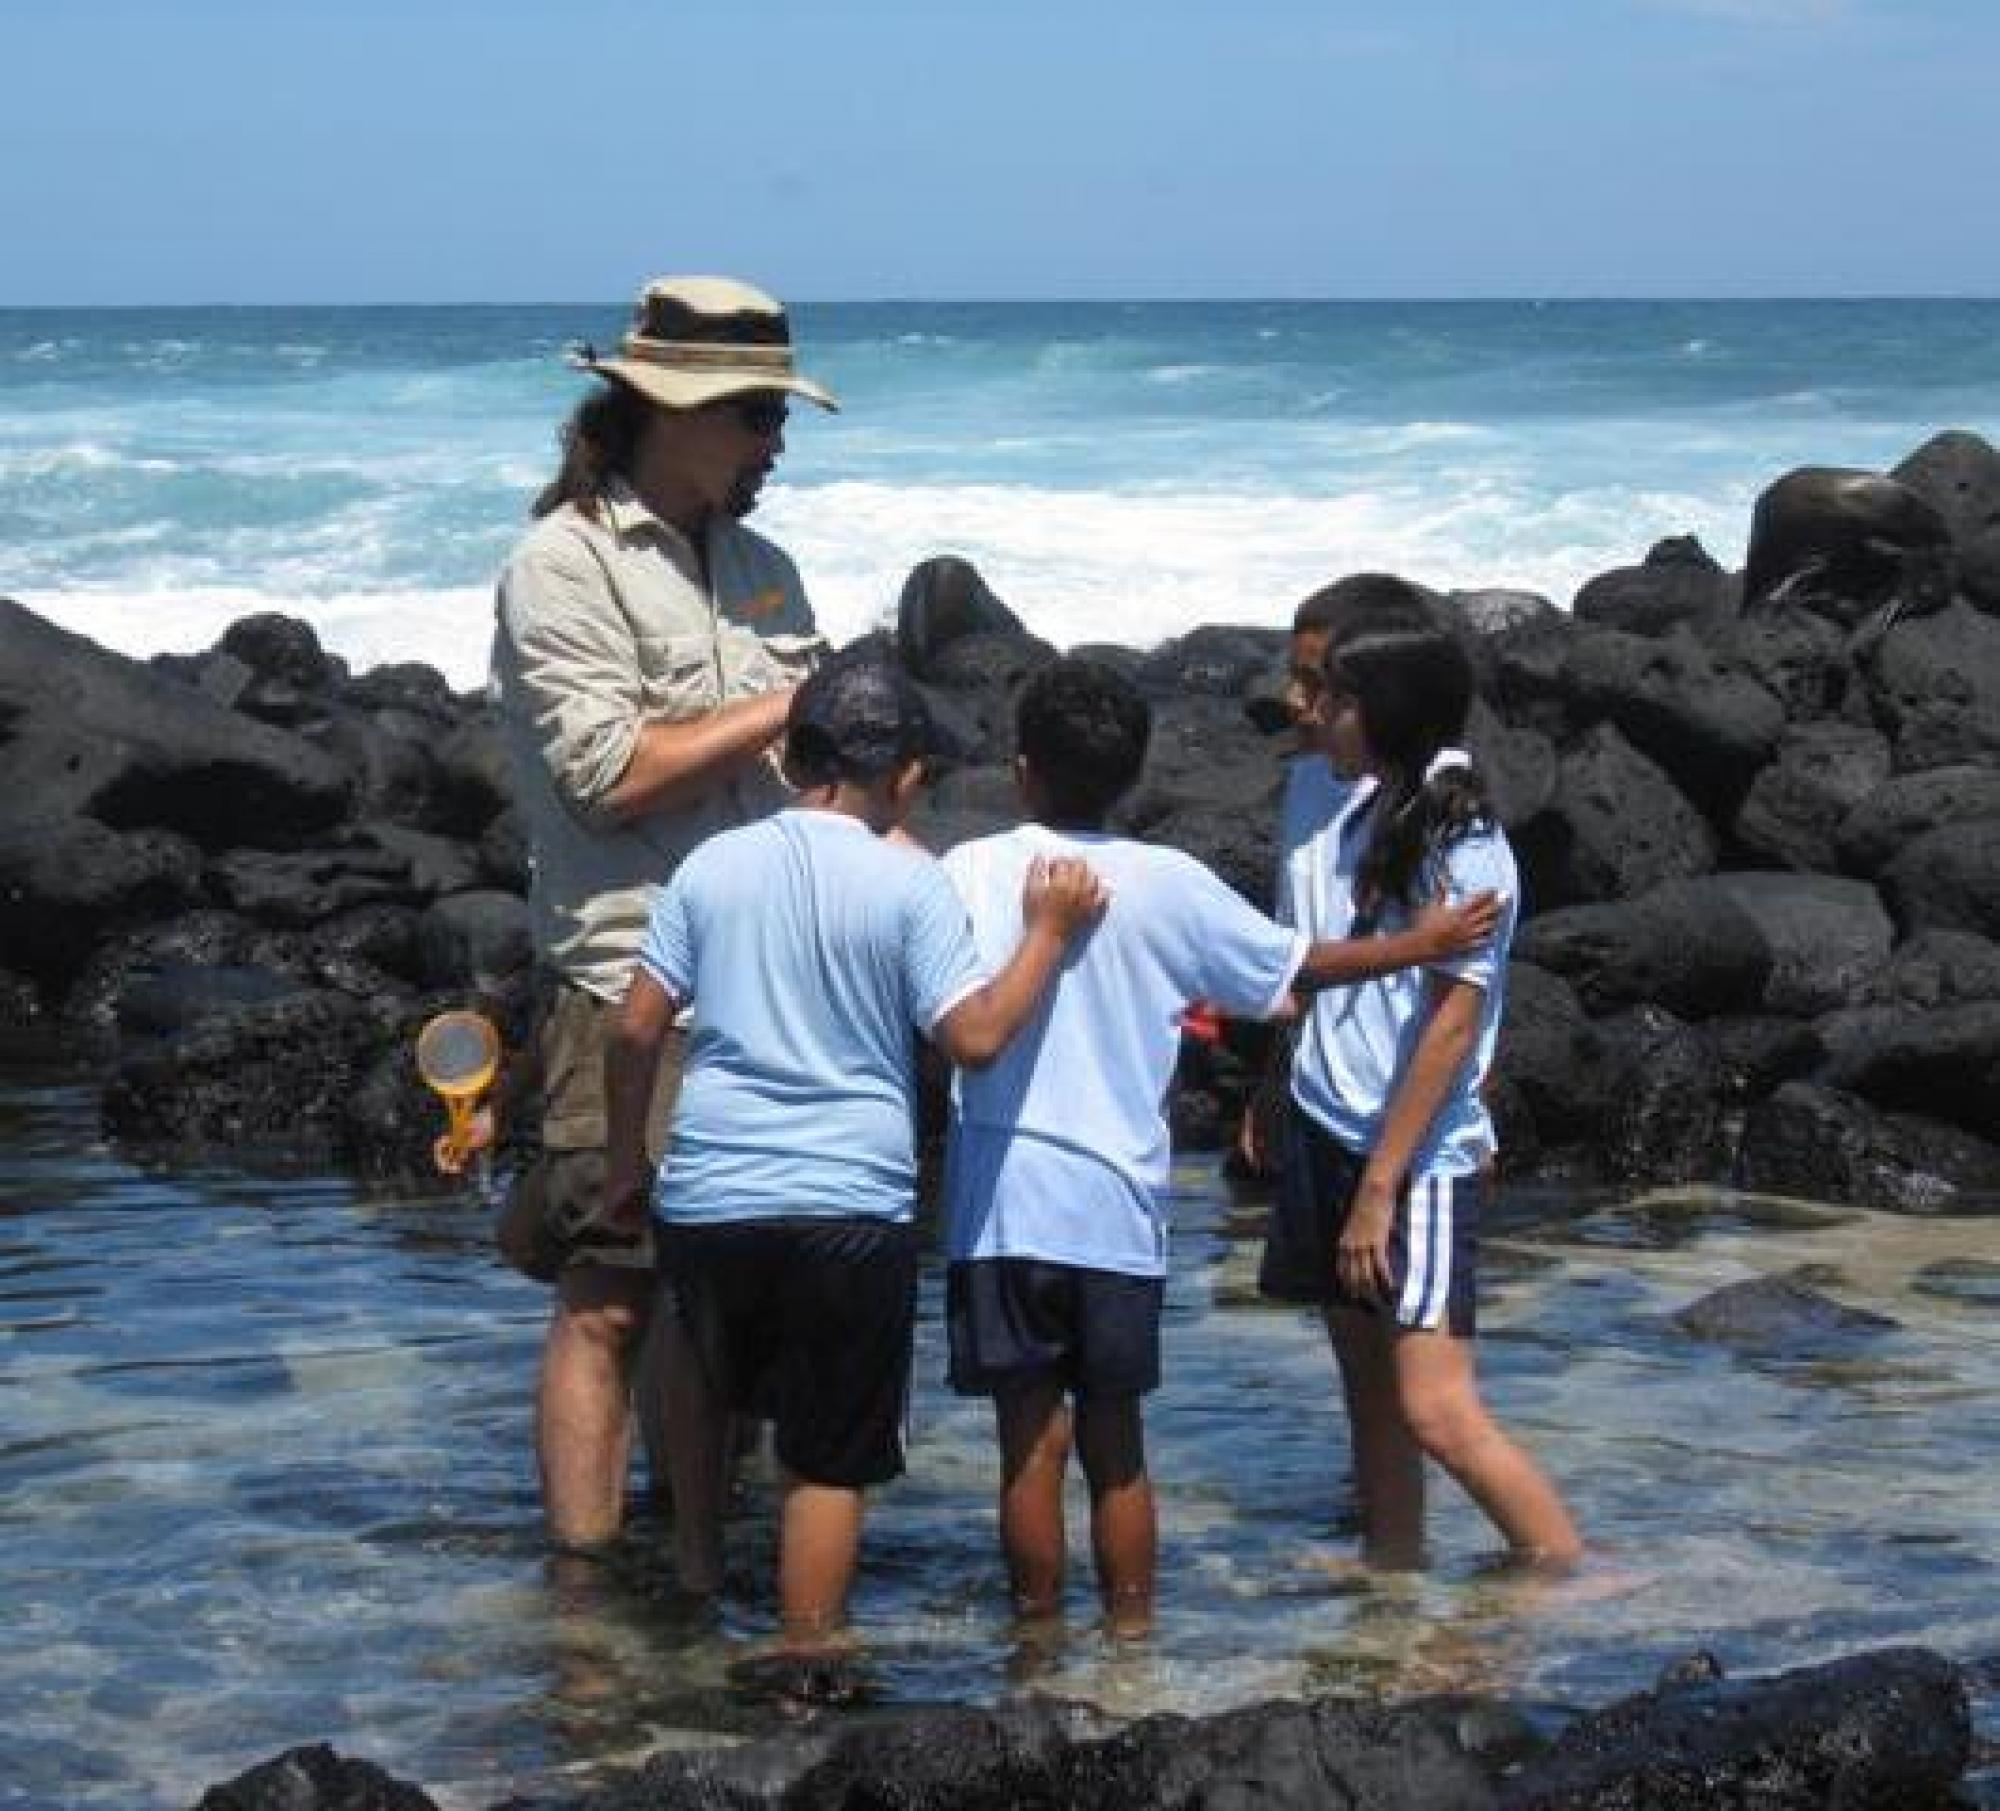 Aaron Miller was among the local educators to receive a scholarship through the UA to study and research in the Galápagos Islands.